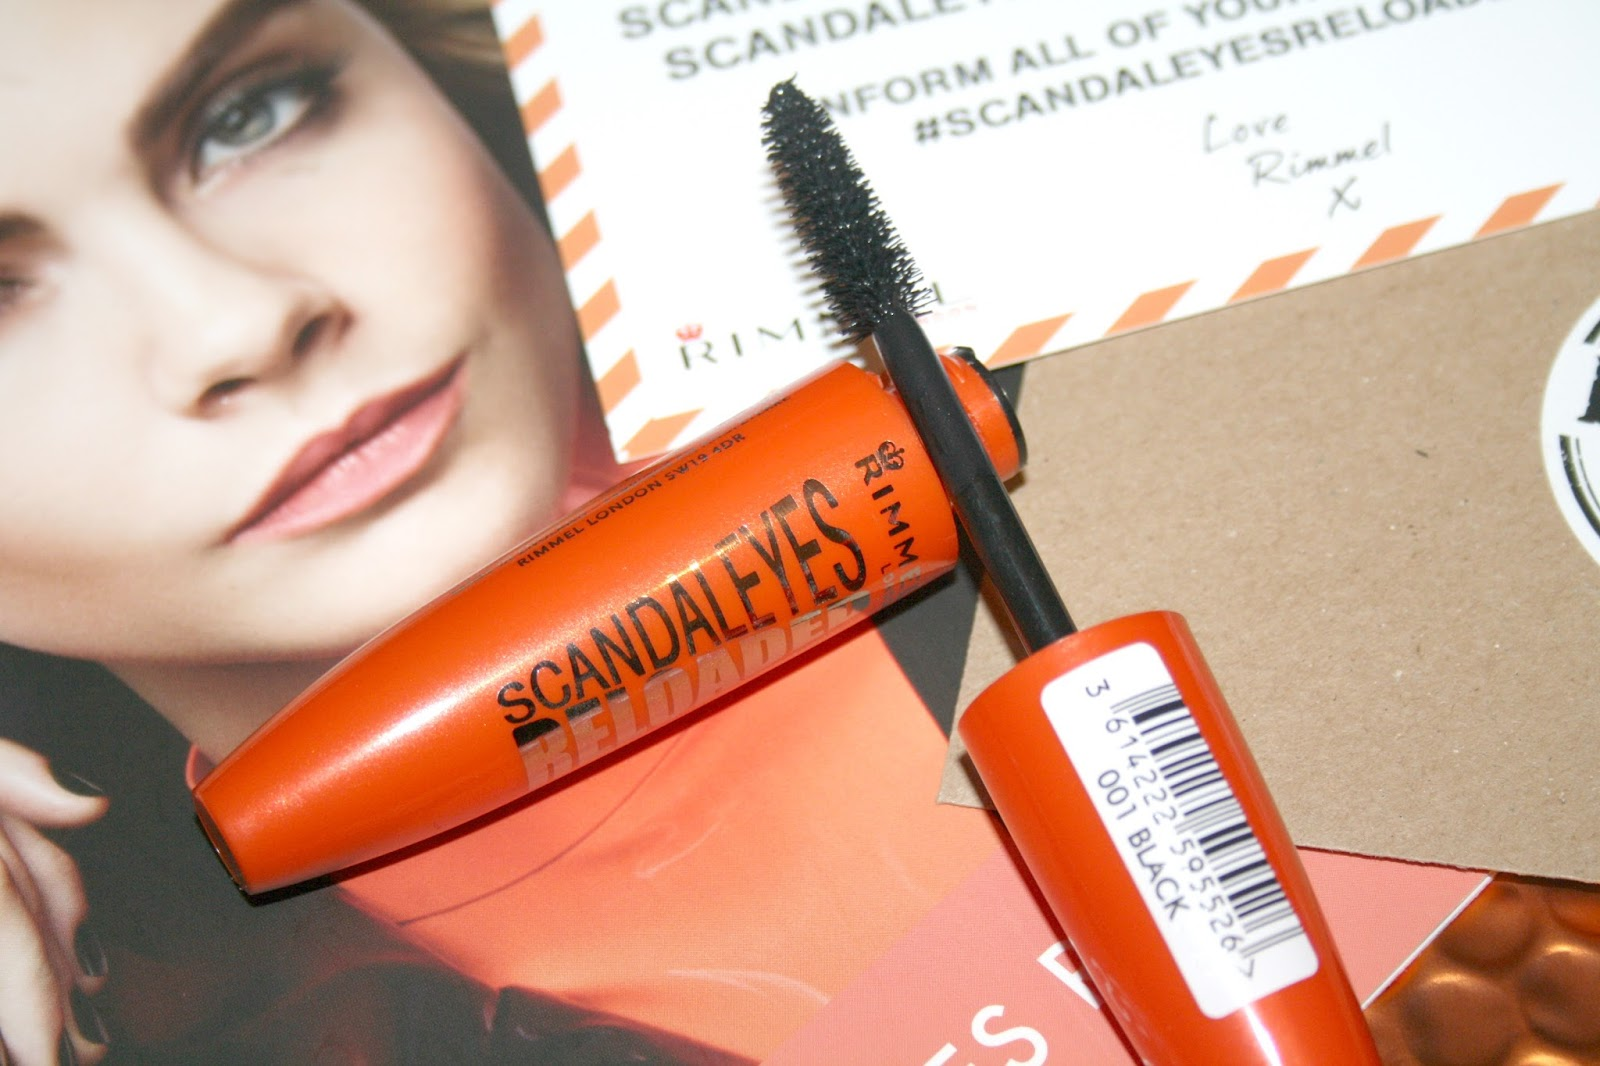 fd2342f587d Beautyqueenuk | A UK Beauty and Lifestyle Blog: Rimmel: Scandaleyes ...